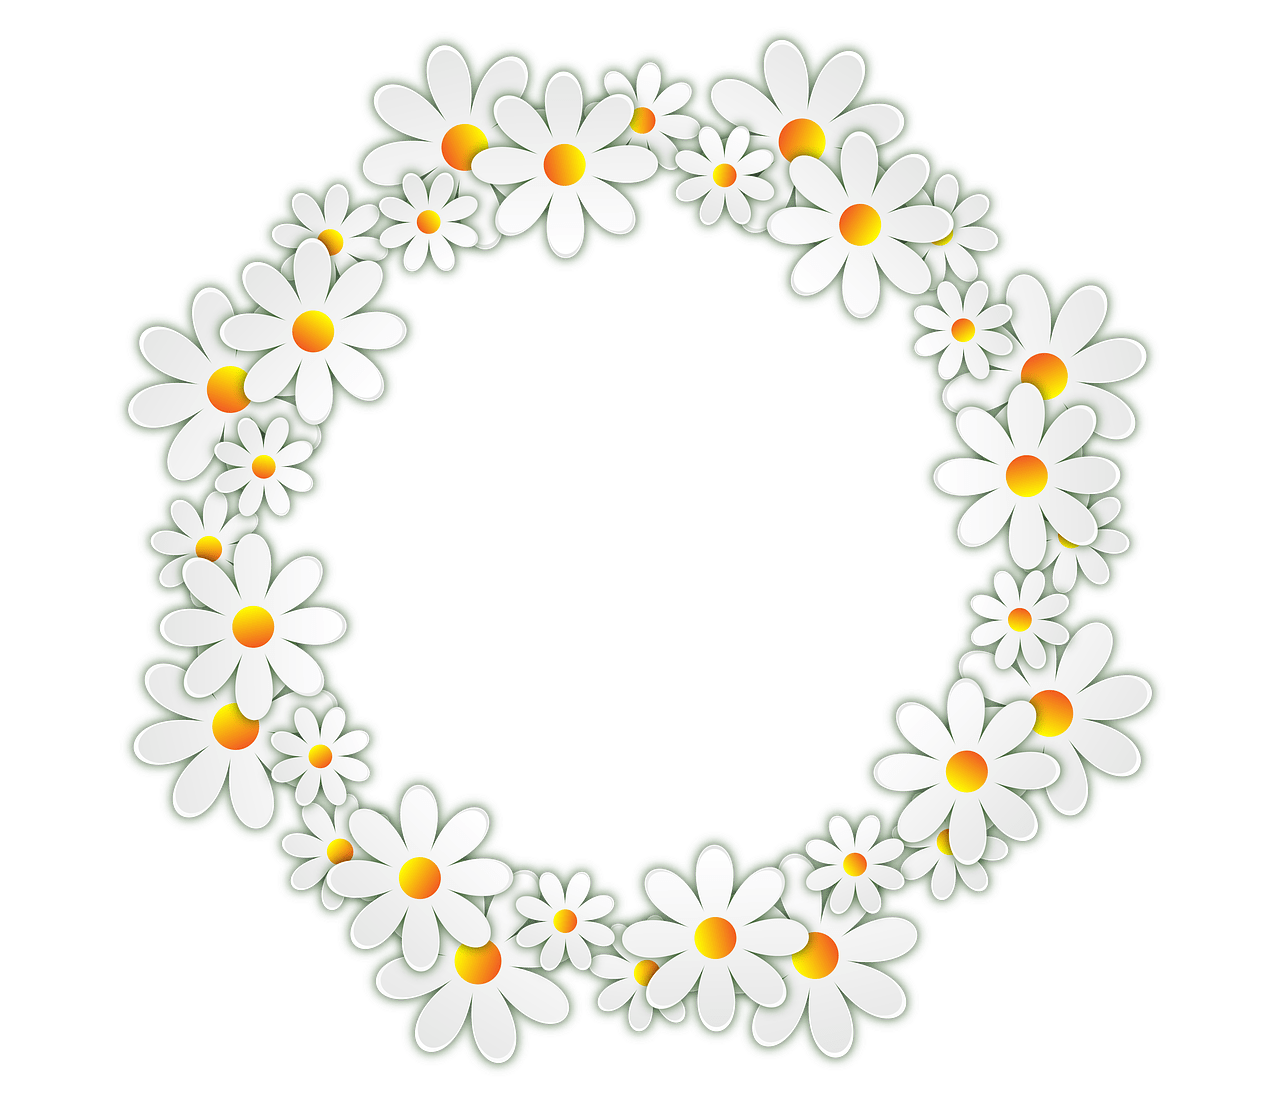 Daisy Clipart Frame Daisy Frame Transparent Free For